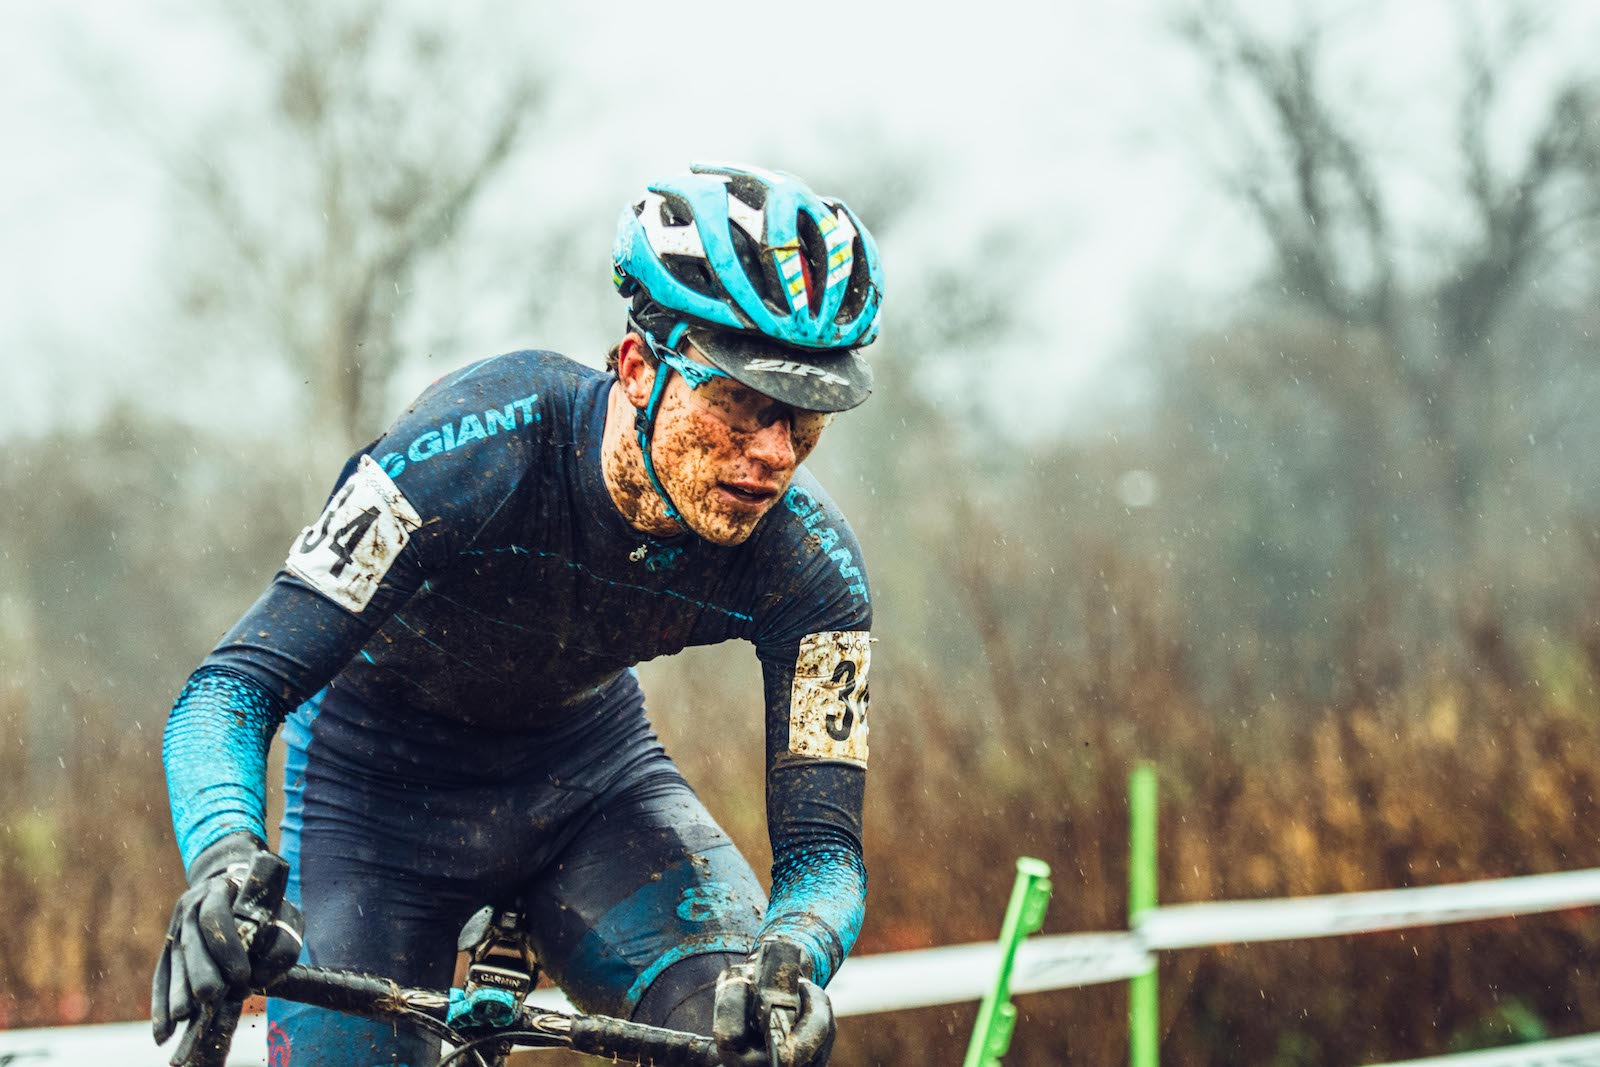 """Andrew Hoffman, United States. """"Team NeighborLink cyclocross rider, Josh Johnson, three laps into the UCI-C2 event at the Indy Cycloplex on Dec 4th. The event was the muddiest race of the season for Josh, and had temperatures right around 40 degrees. The fun of a wet, muddy cross races diminishes when it's on the brink of freezing. Every rider that day looked shattered at the end of the race due to the high intensity of professional cyclocross combined with miserable conditions."""" DSLR. @andrewdewey"""